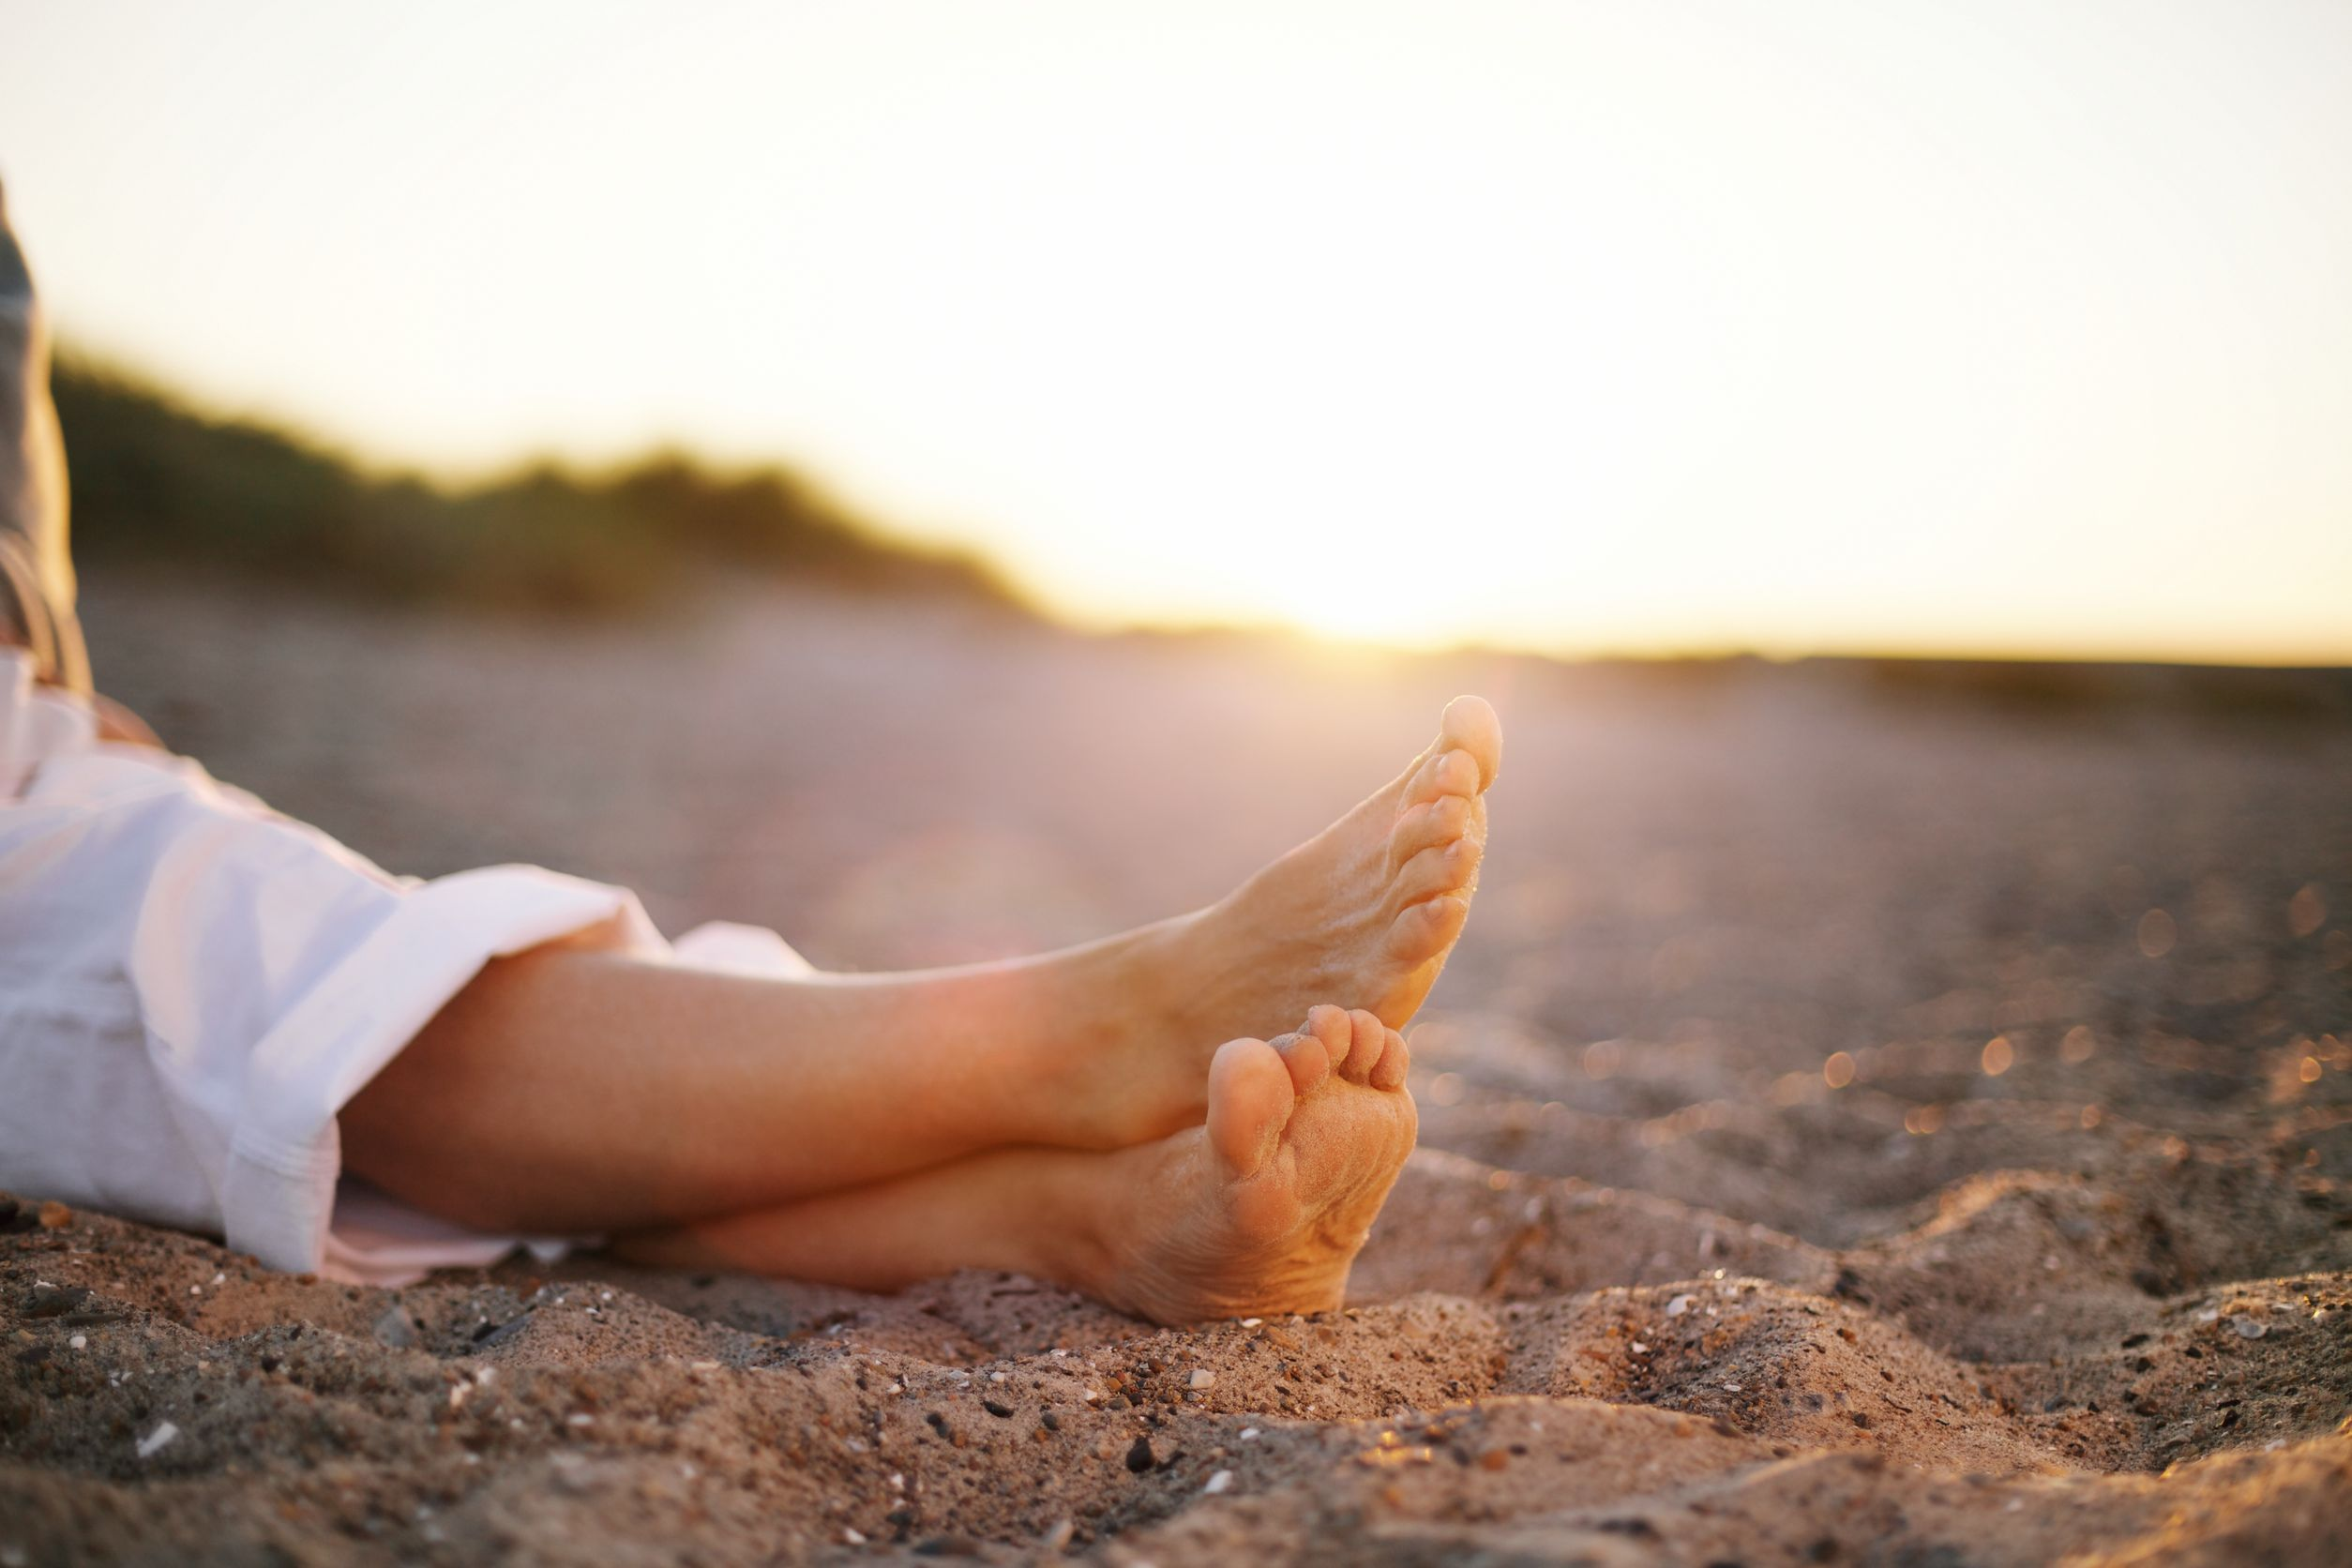 woman's legs crossed on sandy beach